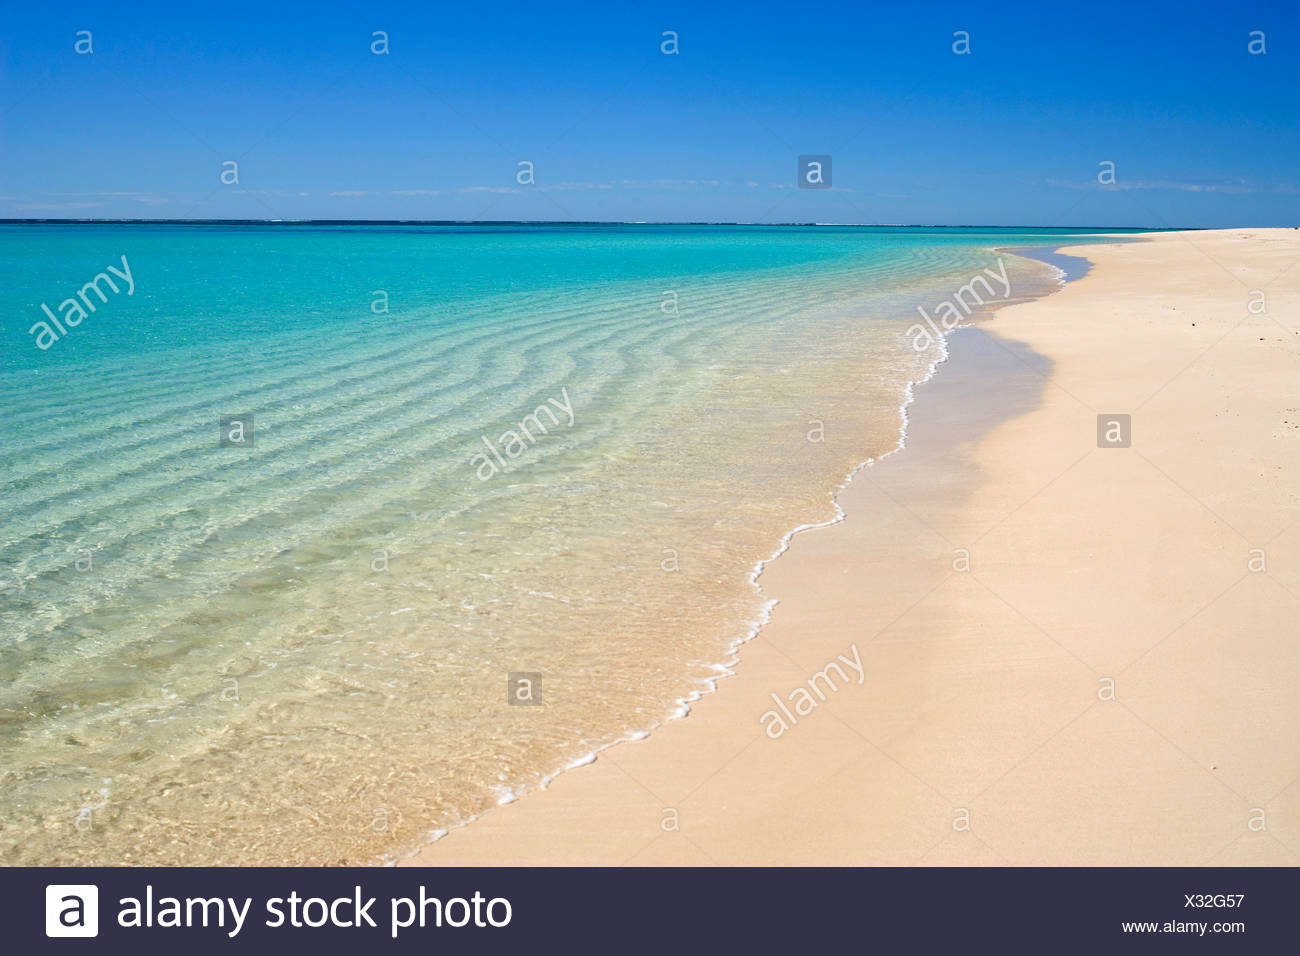 white sandy beach, clear turquoise coloured water and a deep blue sky combine to a perfect beach, Australia, Western Australia, Ningaloo Reef Marine Park - Stock Image